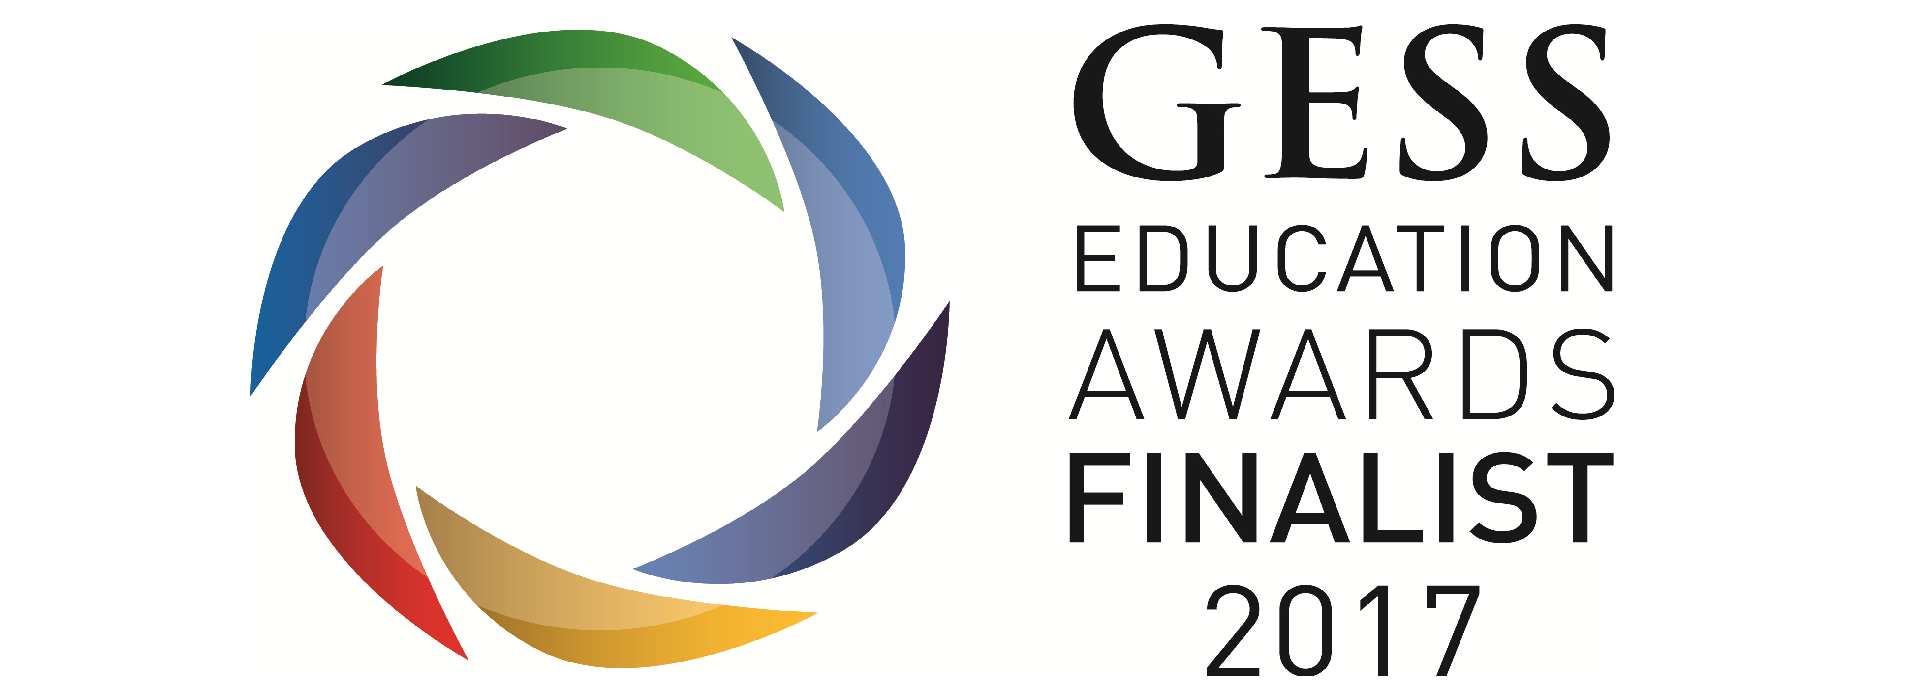 GESS awards finalist 2017_1